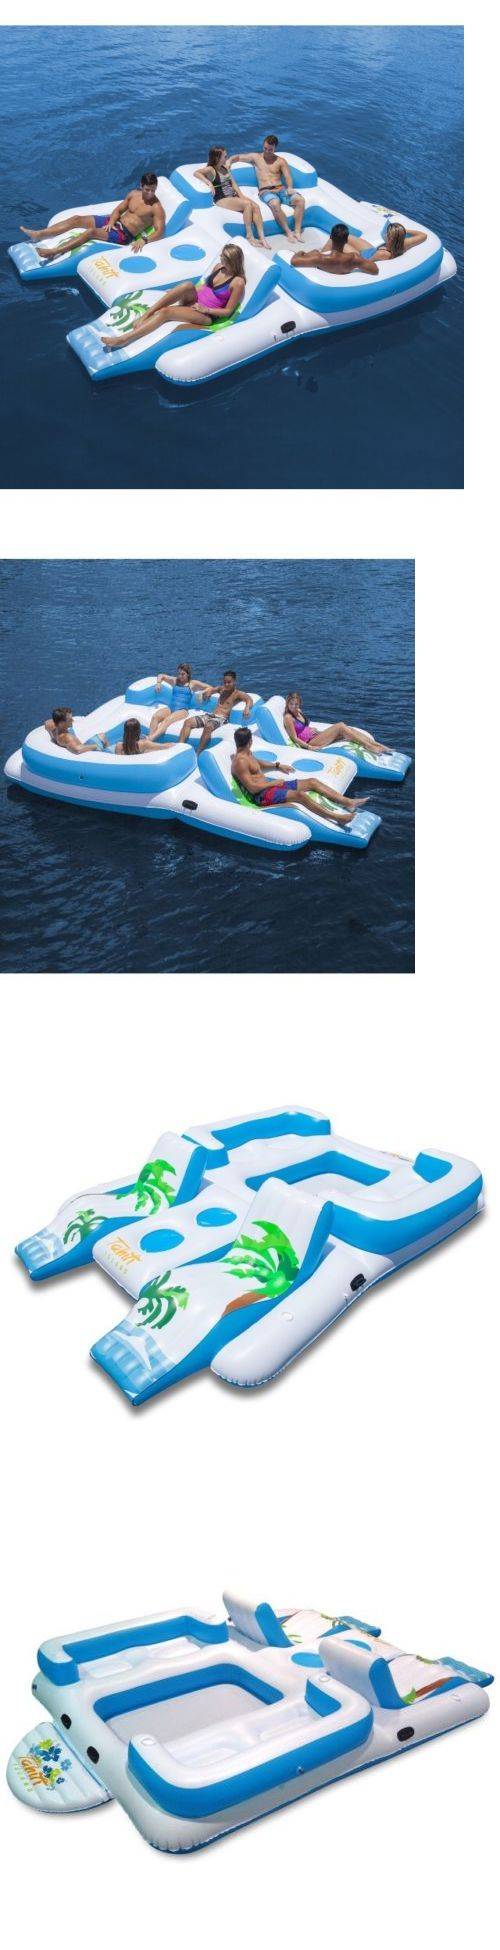 Inflatable Floats and Tubes 79801: 6 Person Oasis Island Lake Floating River Water Pool Inflatable Lounge Seat Raft -> BUY IT NOW ONLY: $145.99 on eBay!